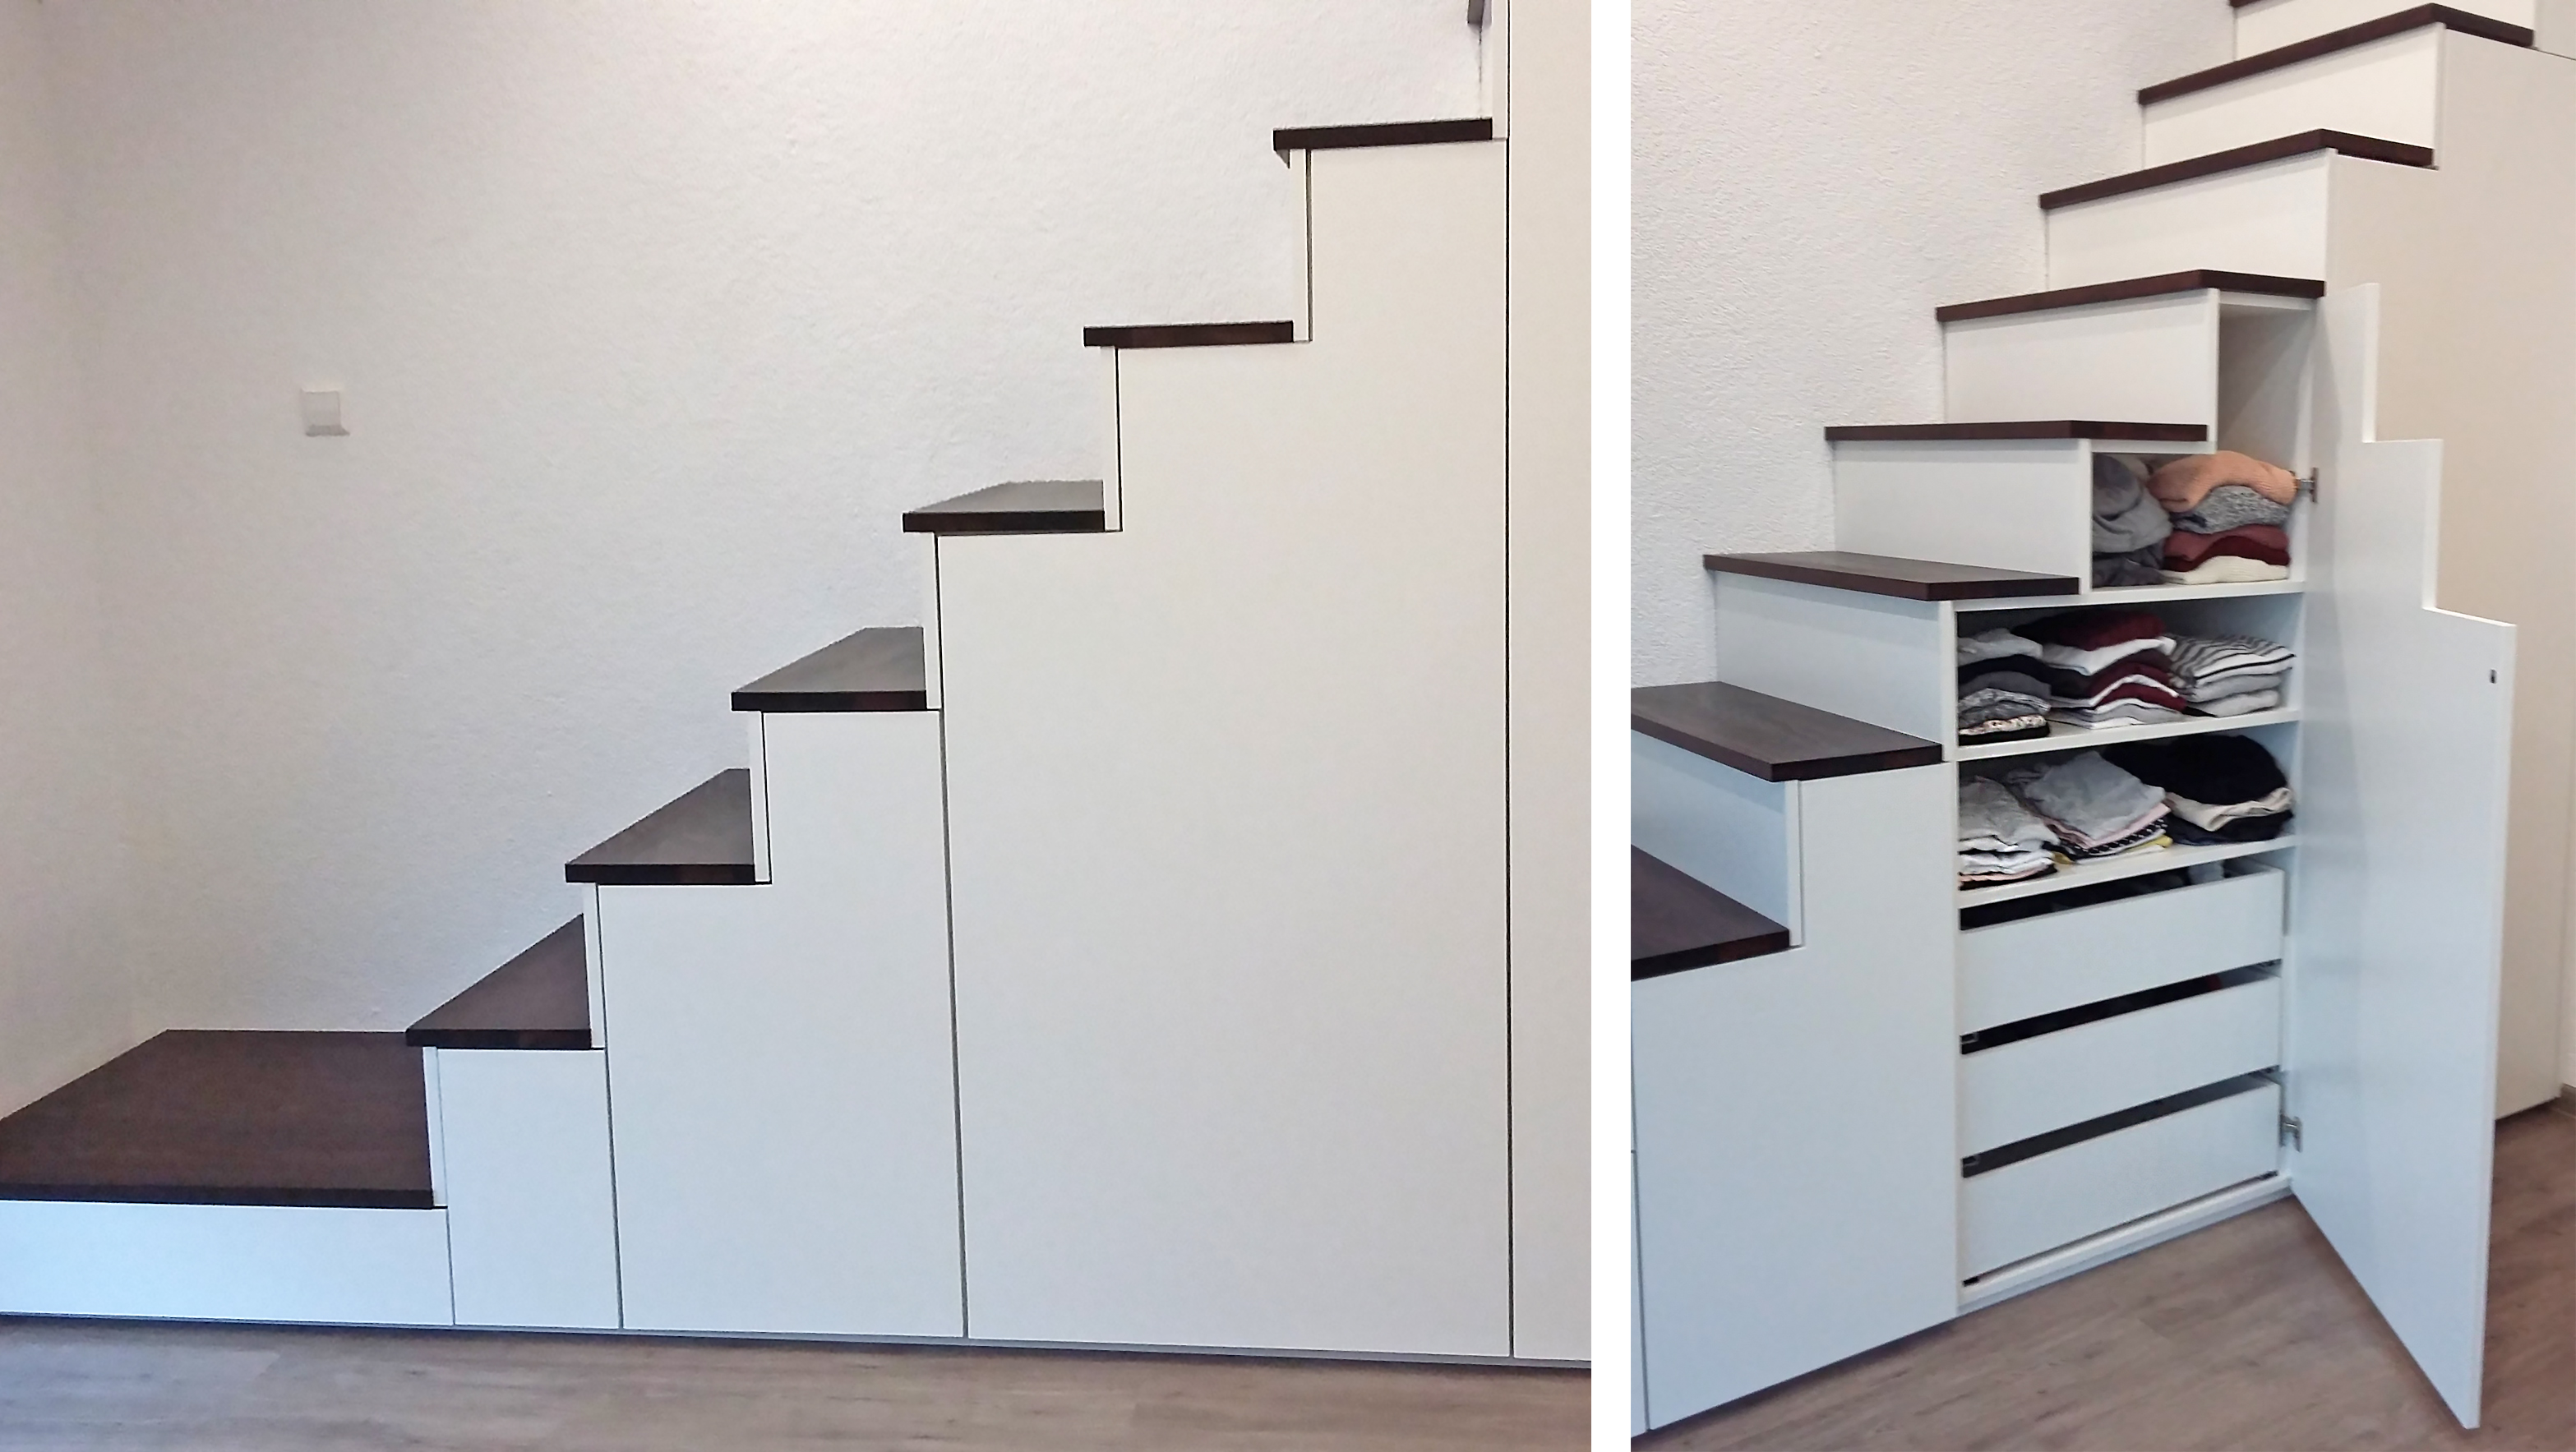 schrank unter treppe beautiful schrank unter treppe ikea with schrank unter treppe top. Black Bedroom Furniture Sets. Home Design Ideas